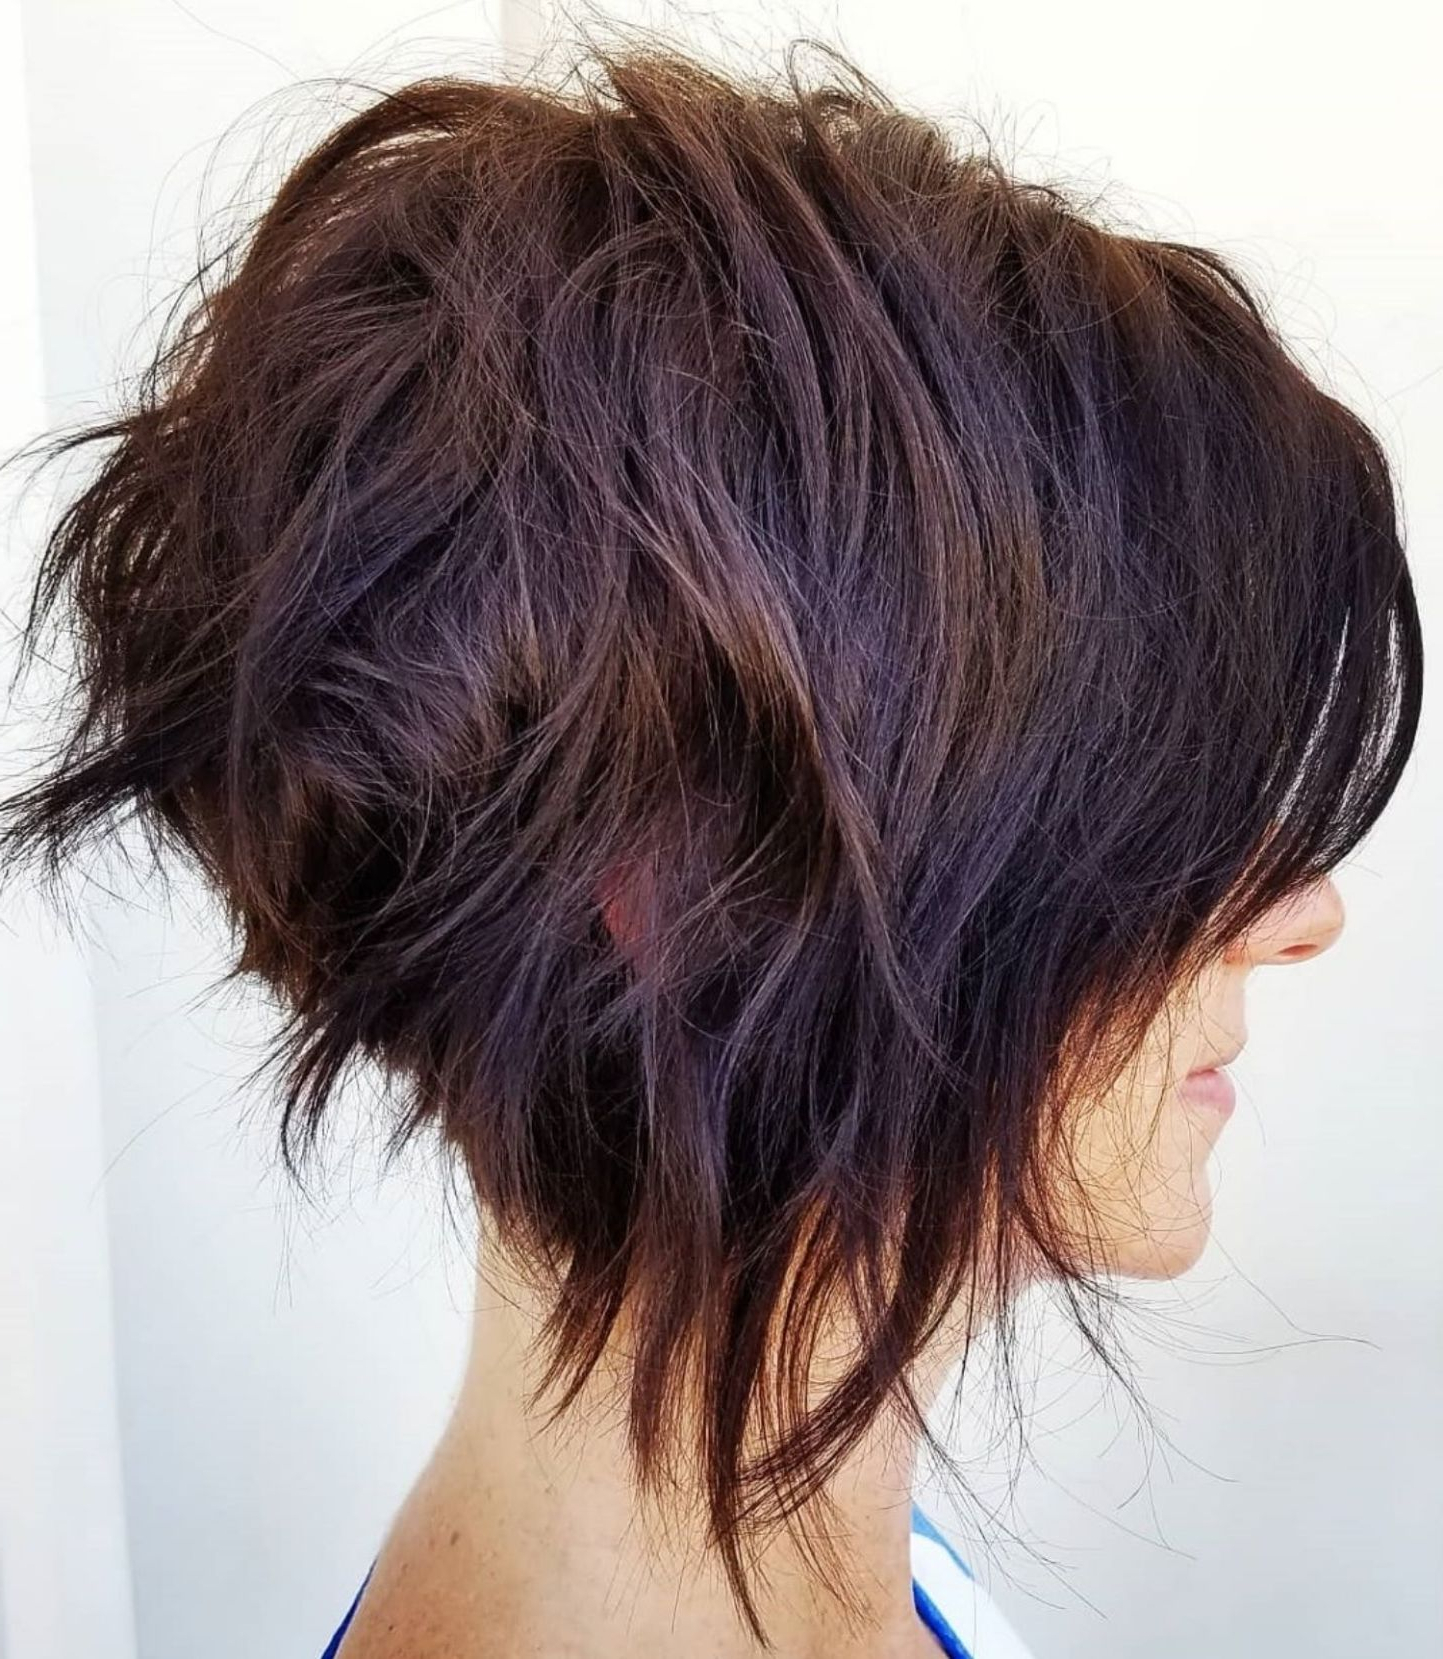 60 Classy Short Haircuts And Hairstyles For Thick Hair | Hair Regarding Disheveled Burgundy Brown Bob Hairstyles (Gallery 9 of 25)